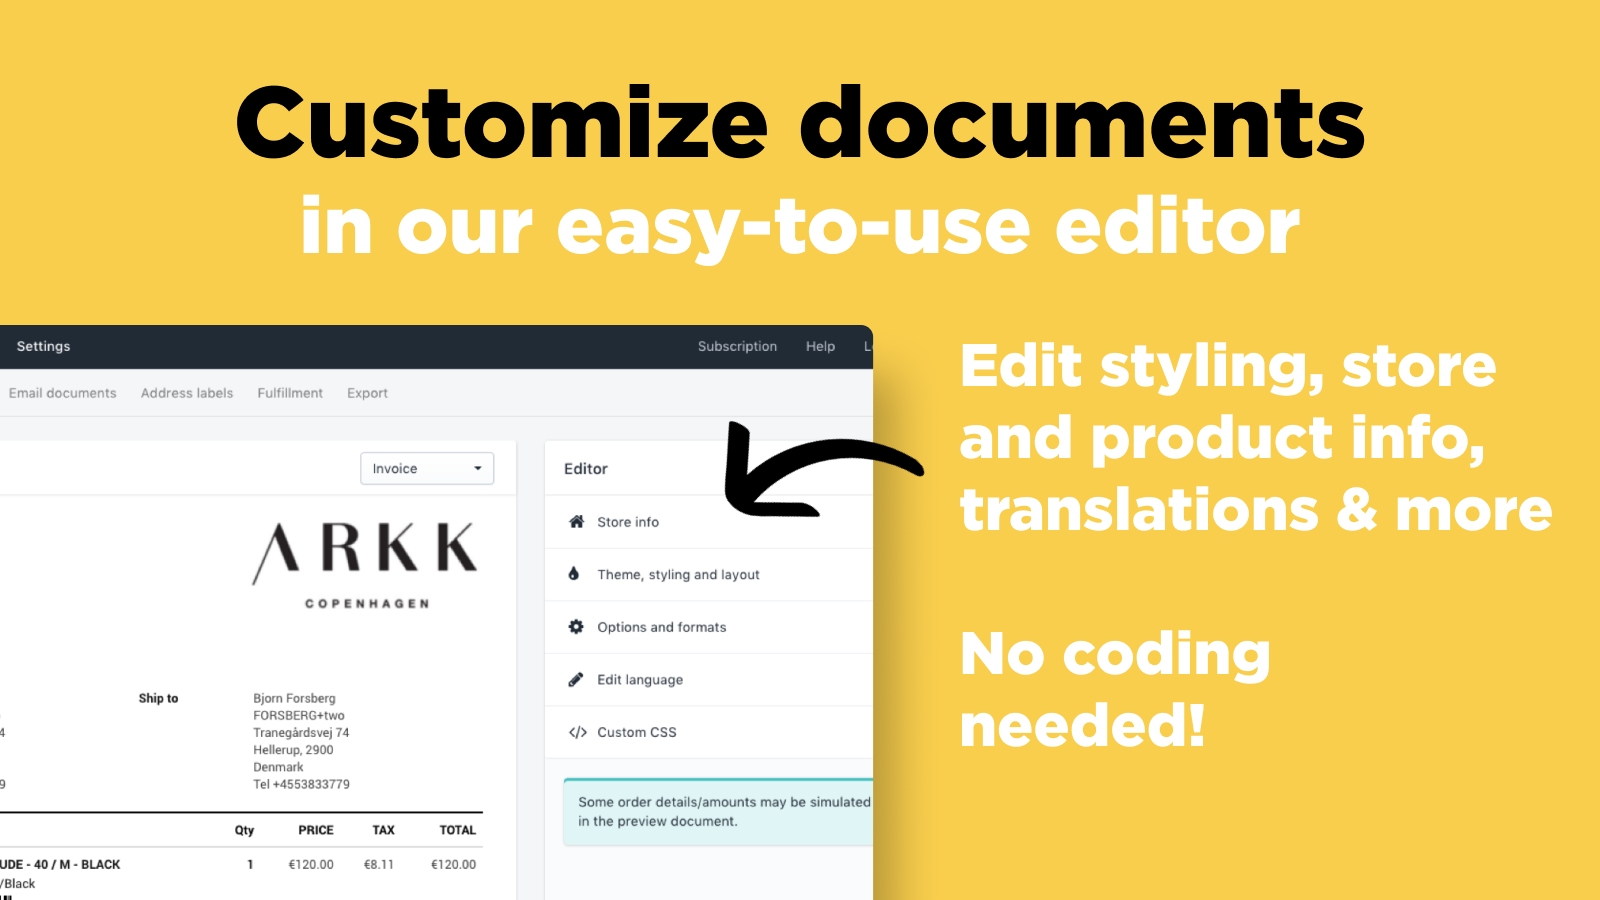 Customize your document designs. No coding needed!